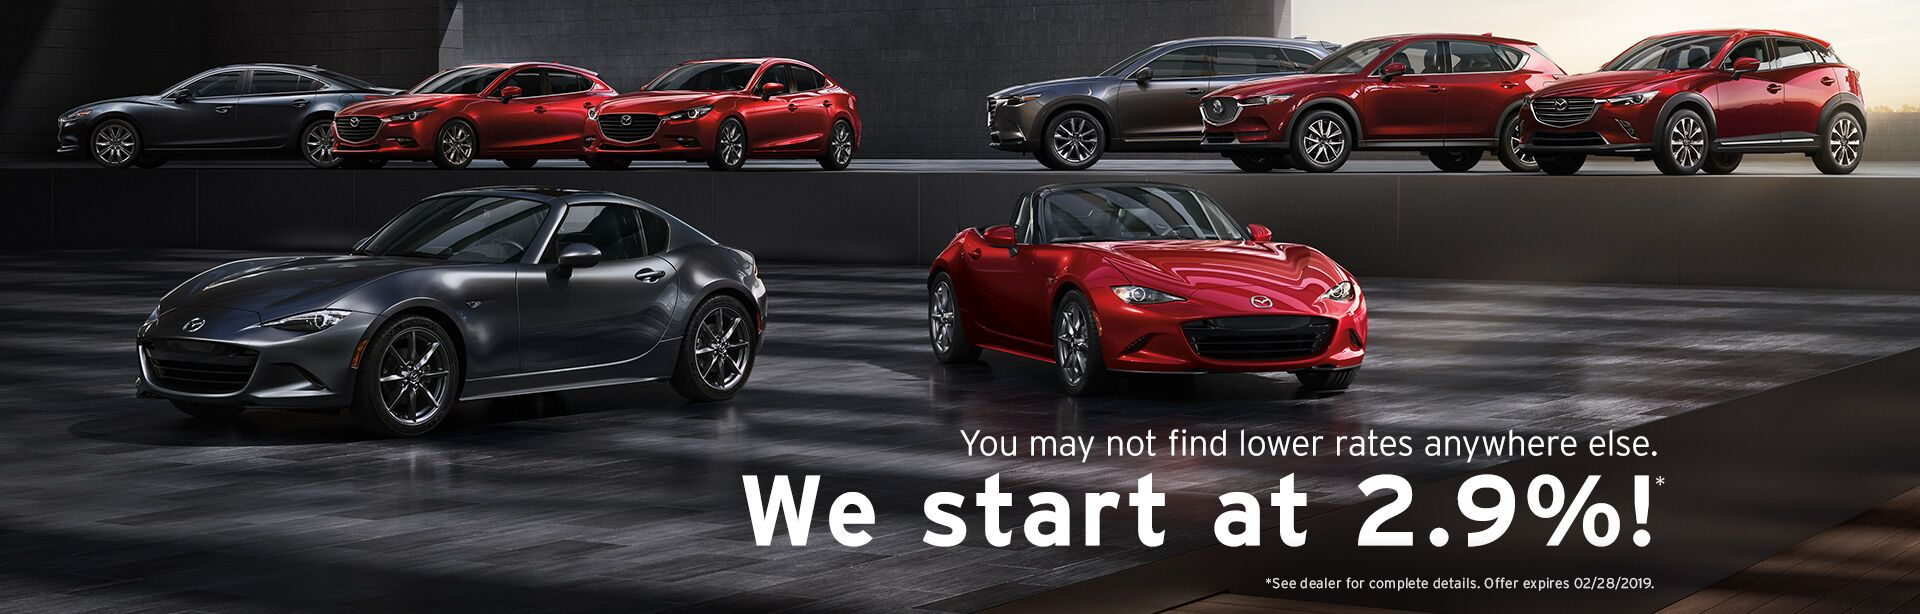 Low Rates at CW Mazda Peoria